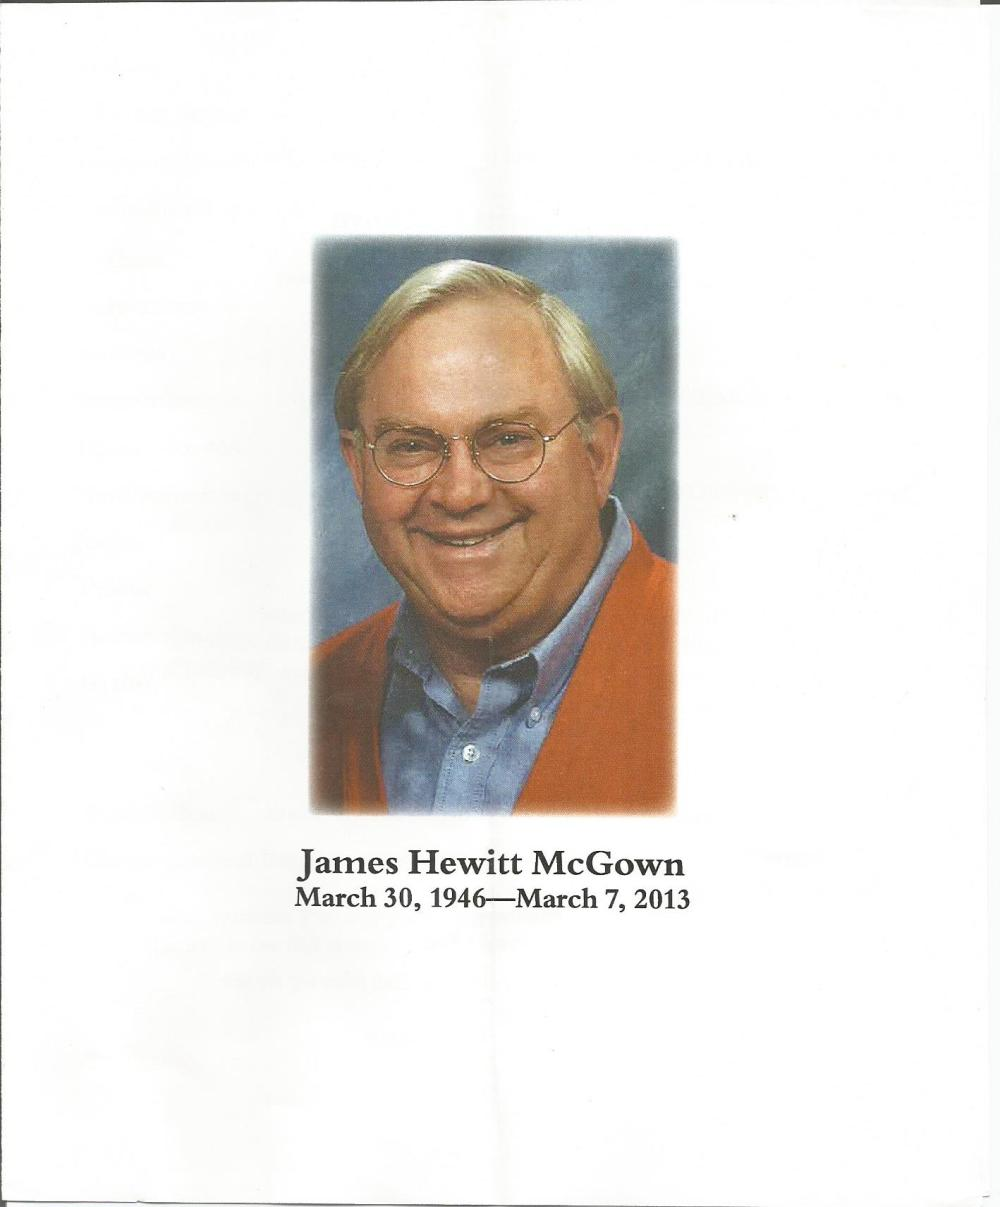 James Hewitt McGown